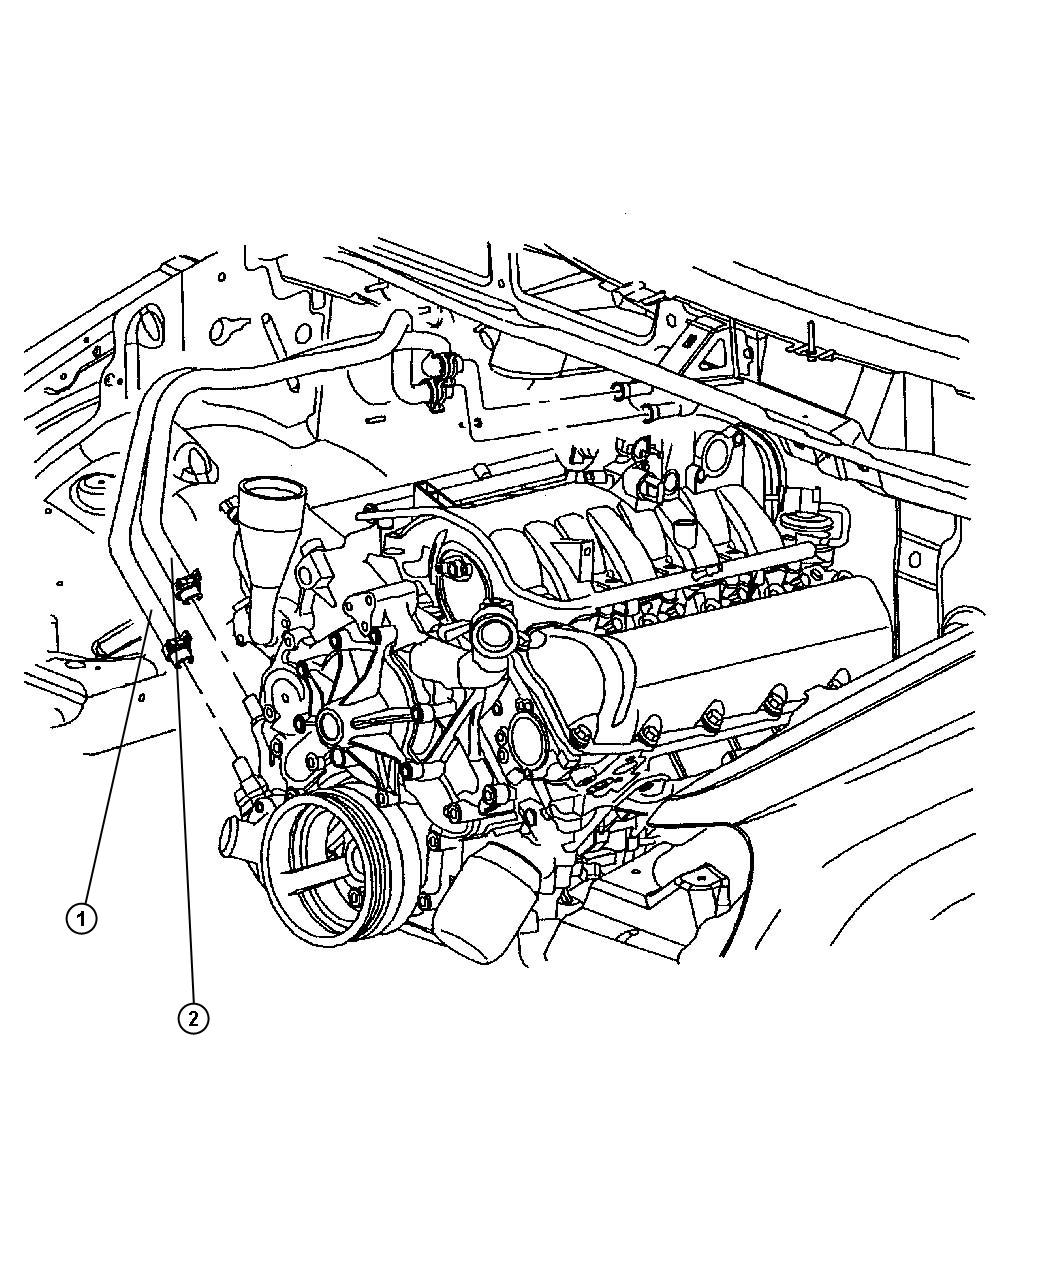 heater hoses diagram 2001 jeep grand cherokee  heater